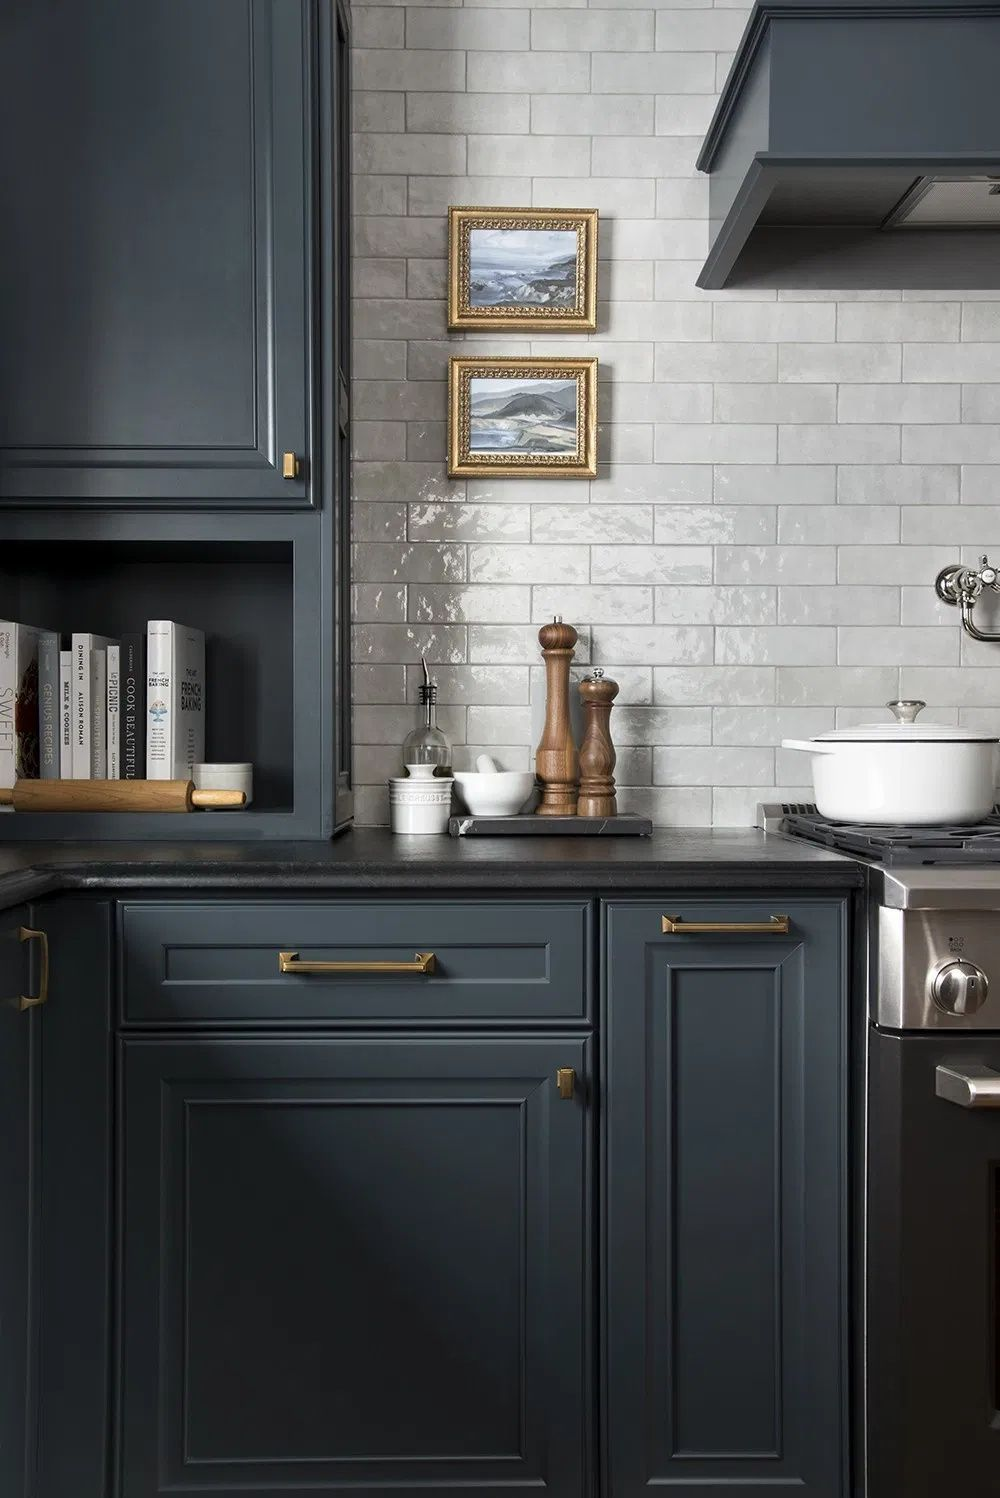 Tips For Making Your Temporary Living Situation Feel Like Home In 2020 Kitchen Remodel Kitchen Design Kitchen Renovation